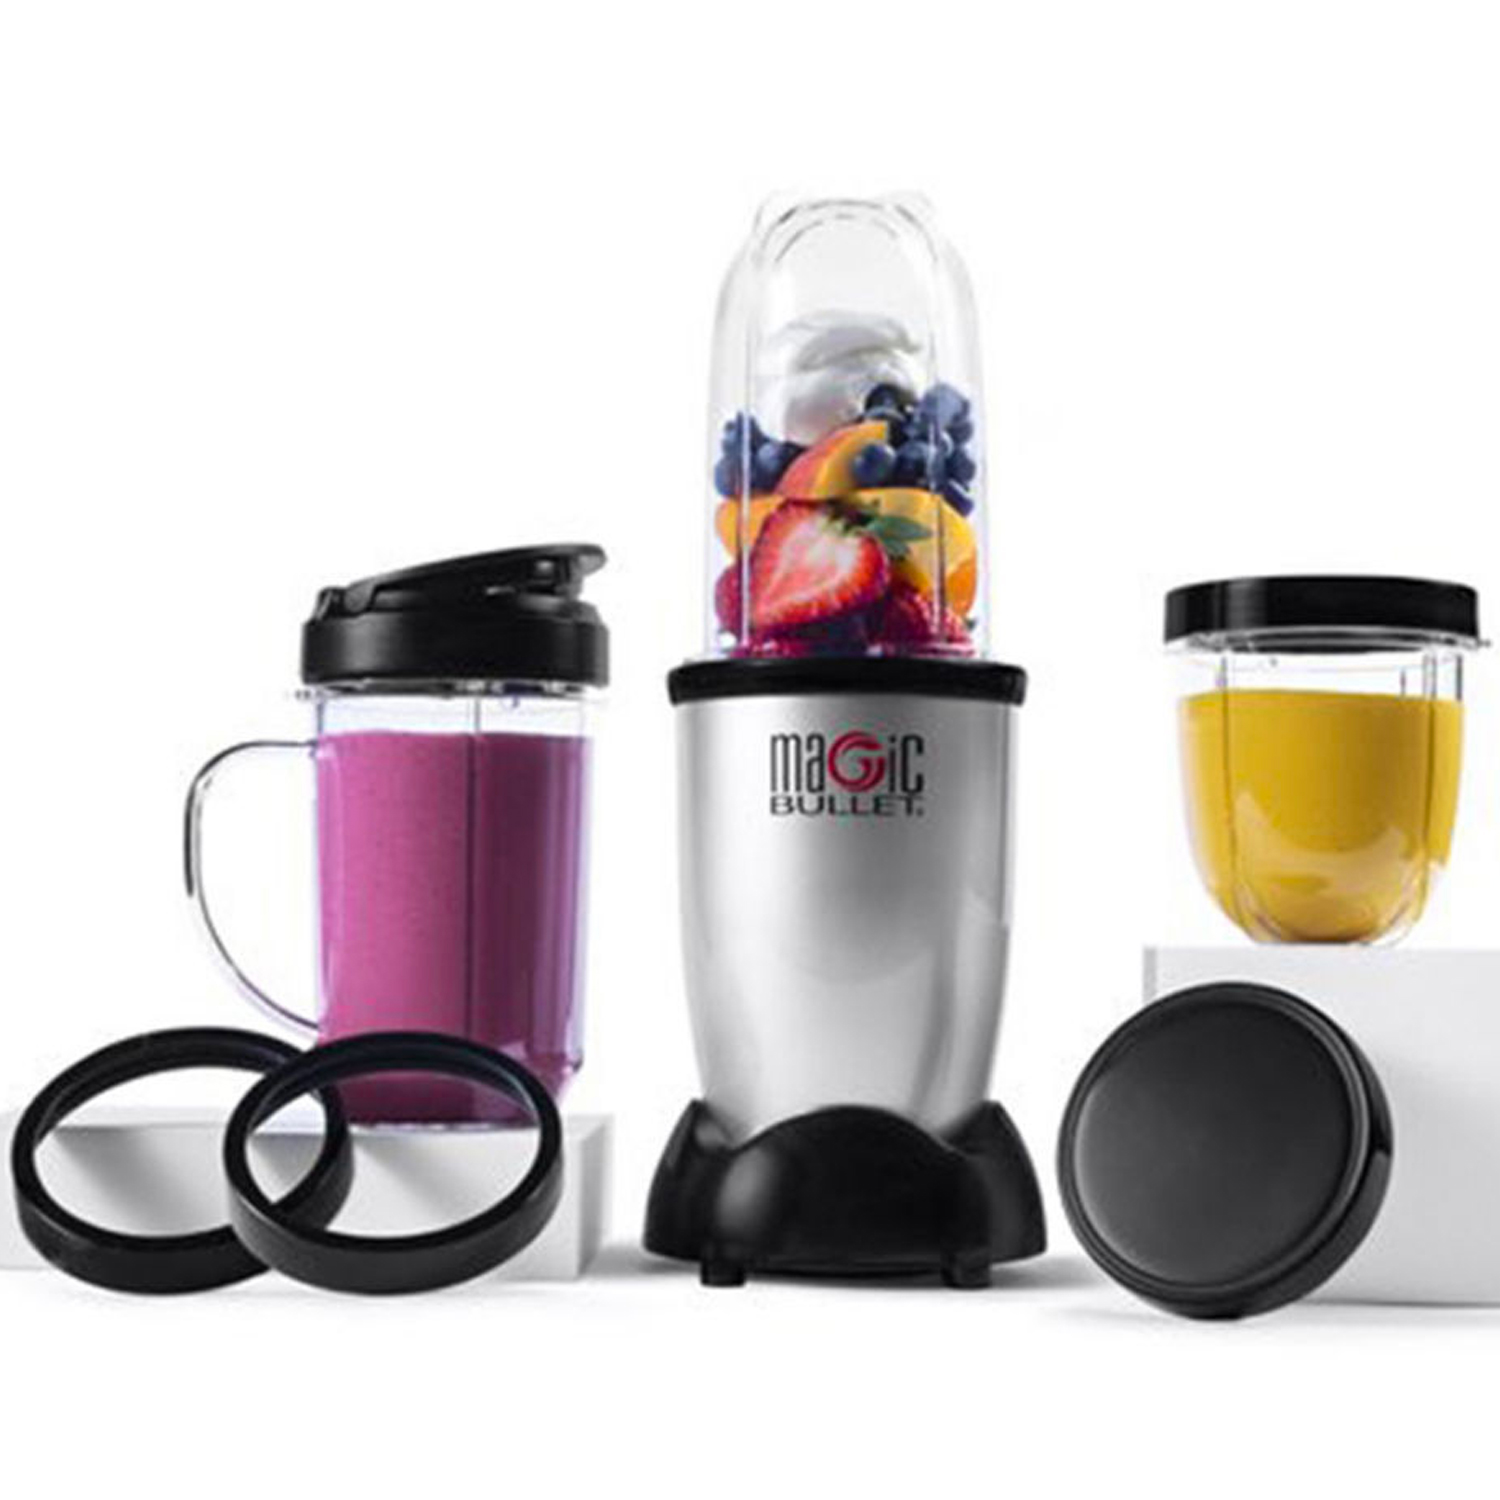 Magic Bullet from JC Penney